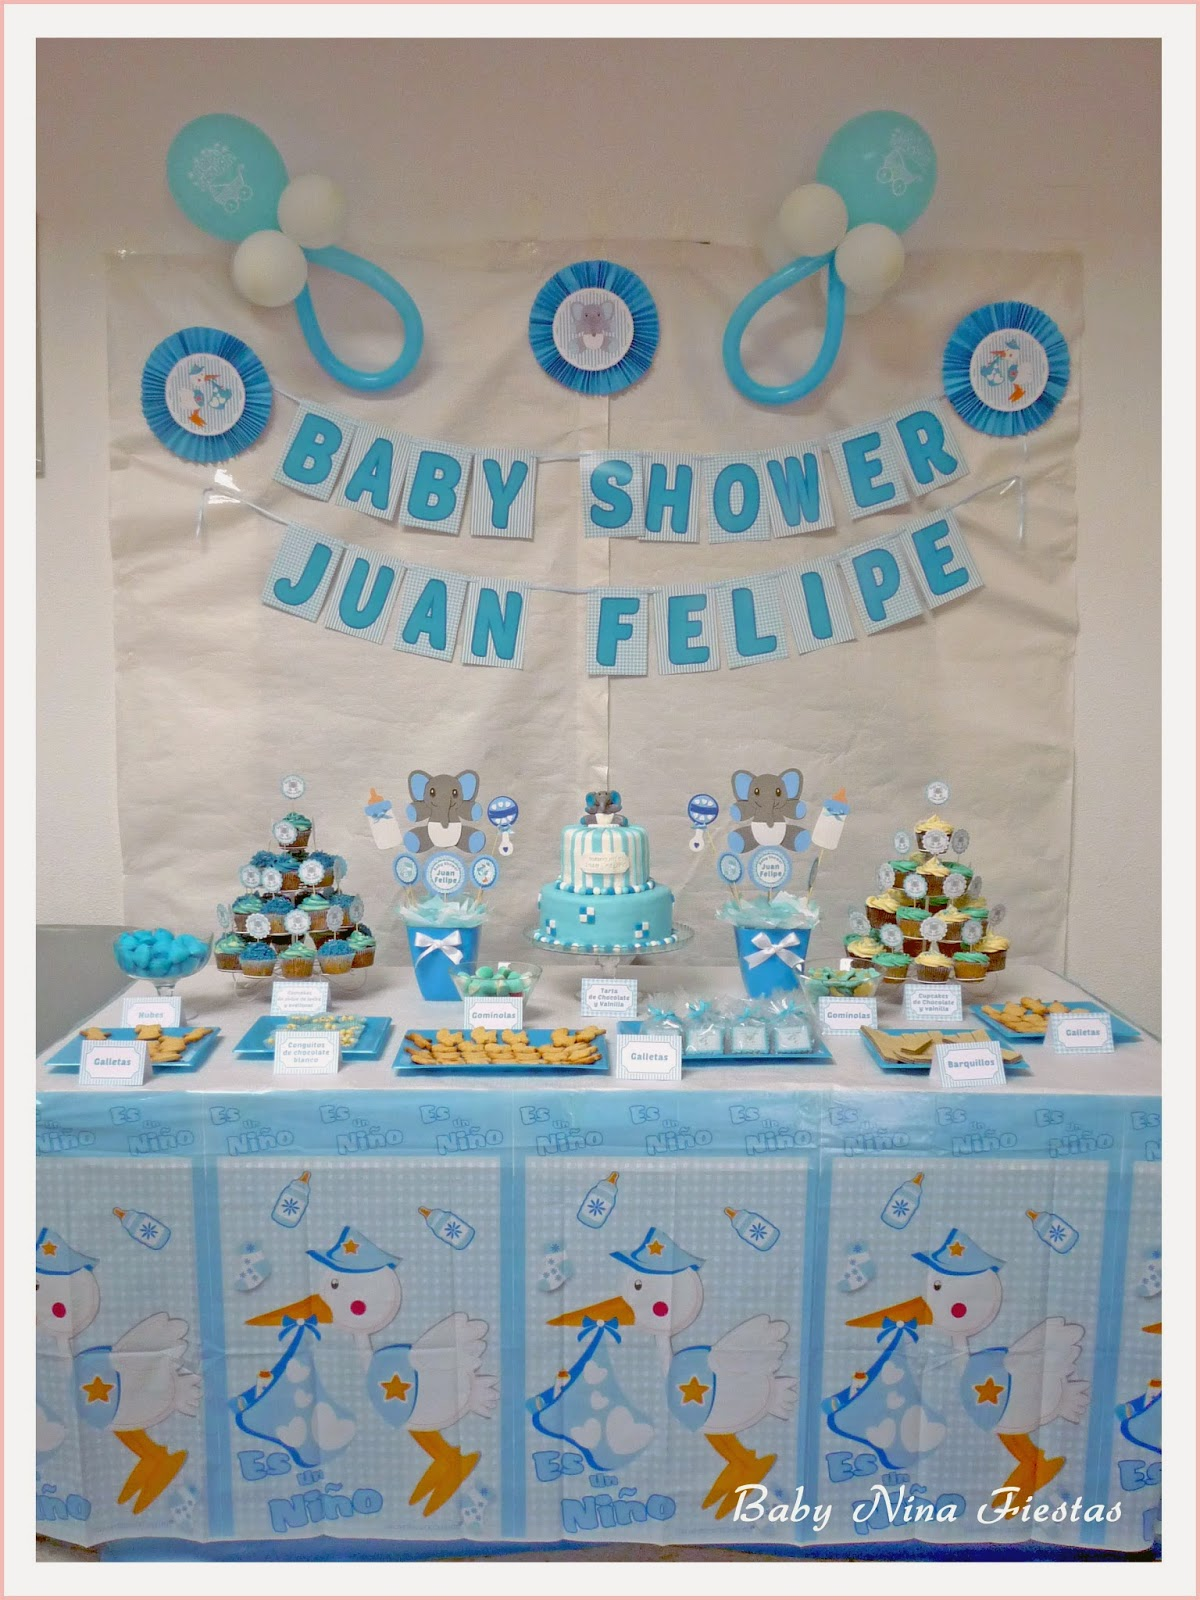 Baby nina fiestas baby shower juan felipe for Mesa baby shower nino